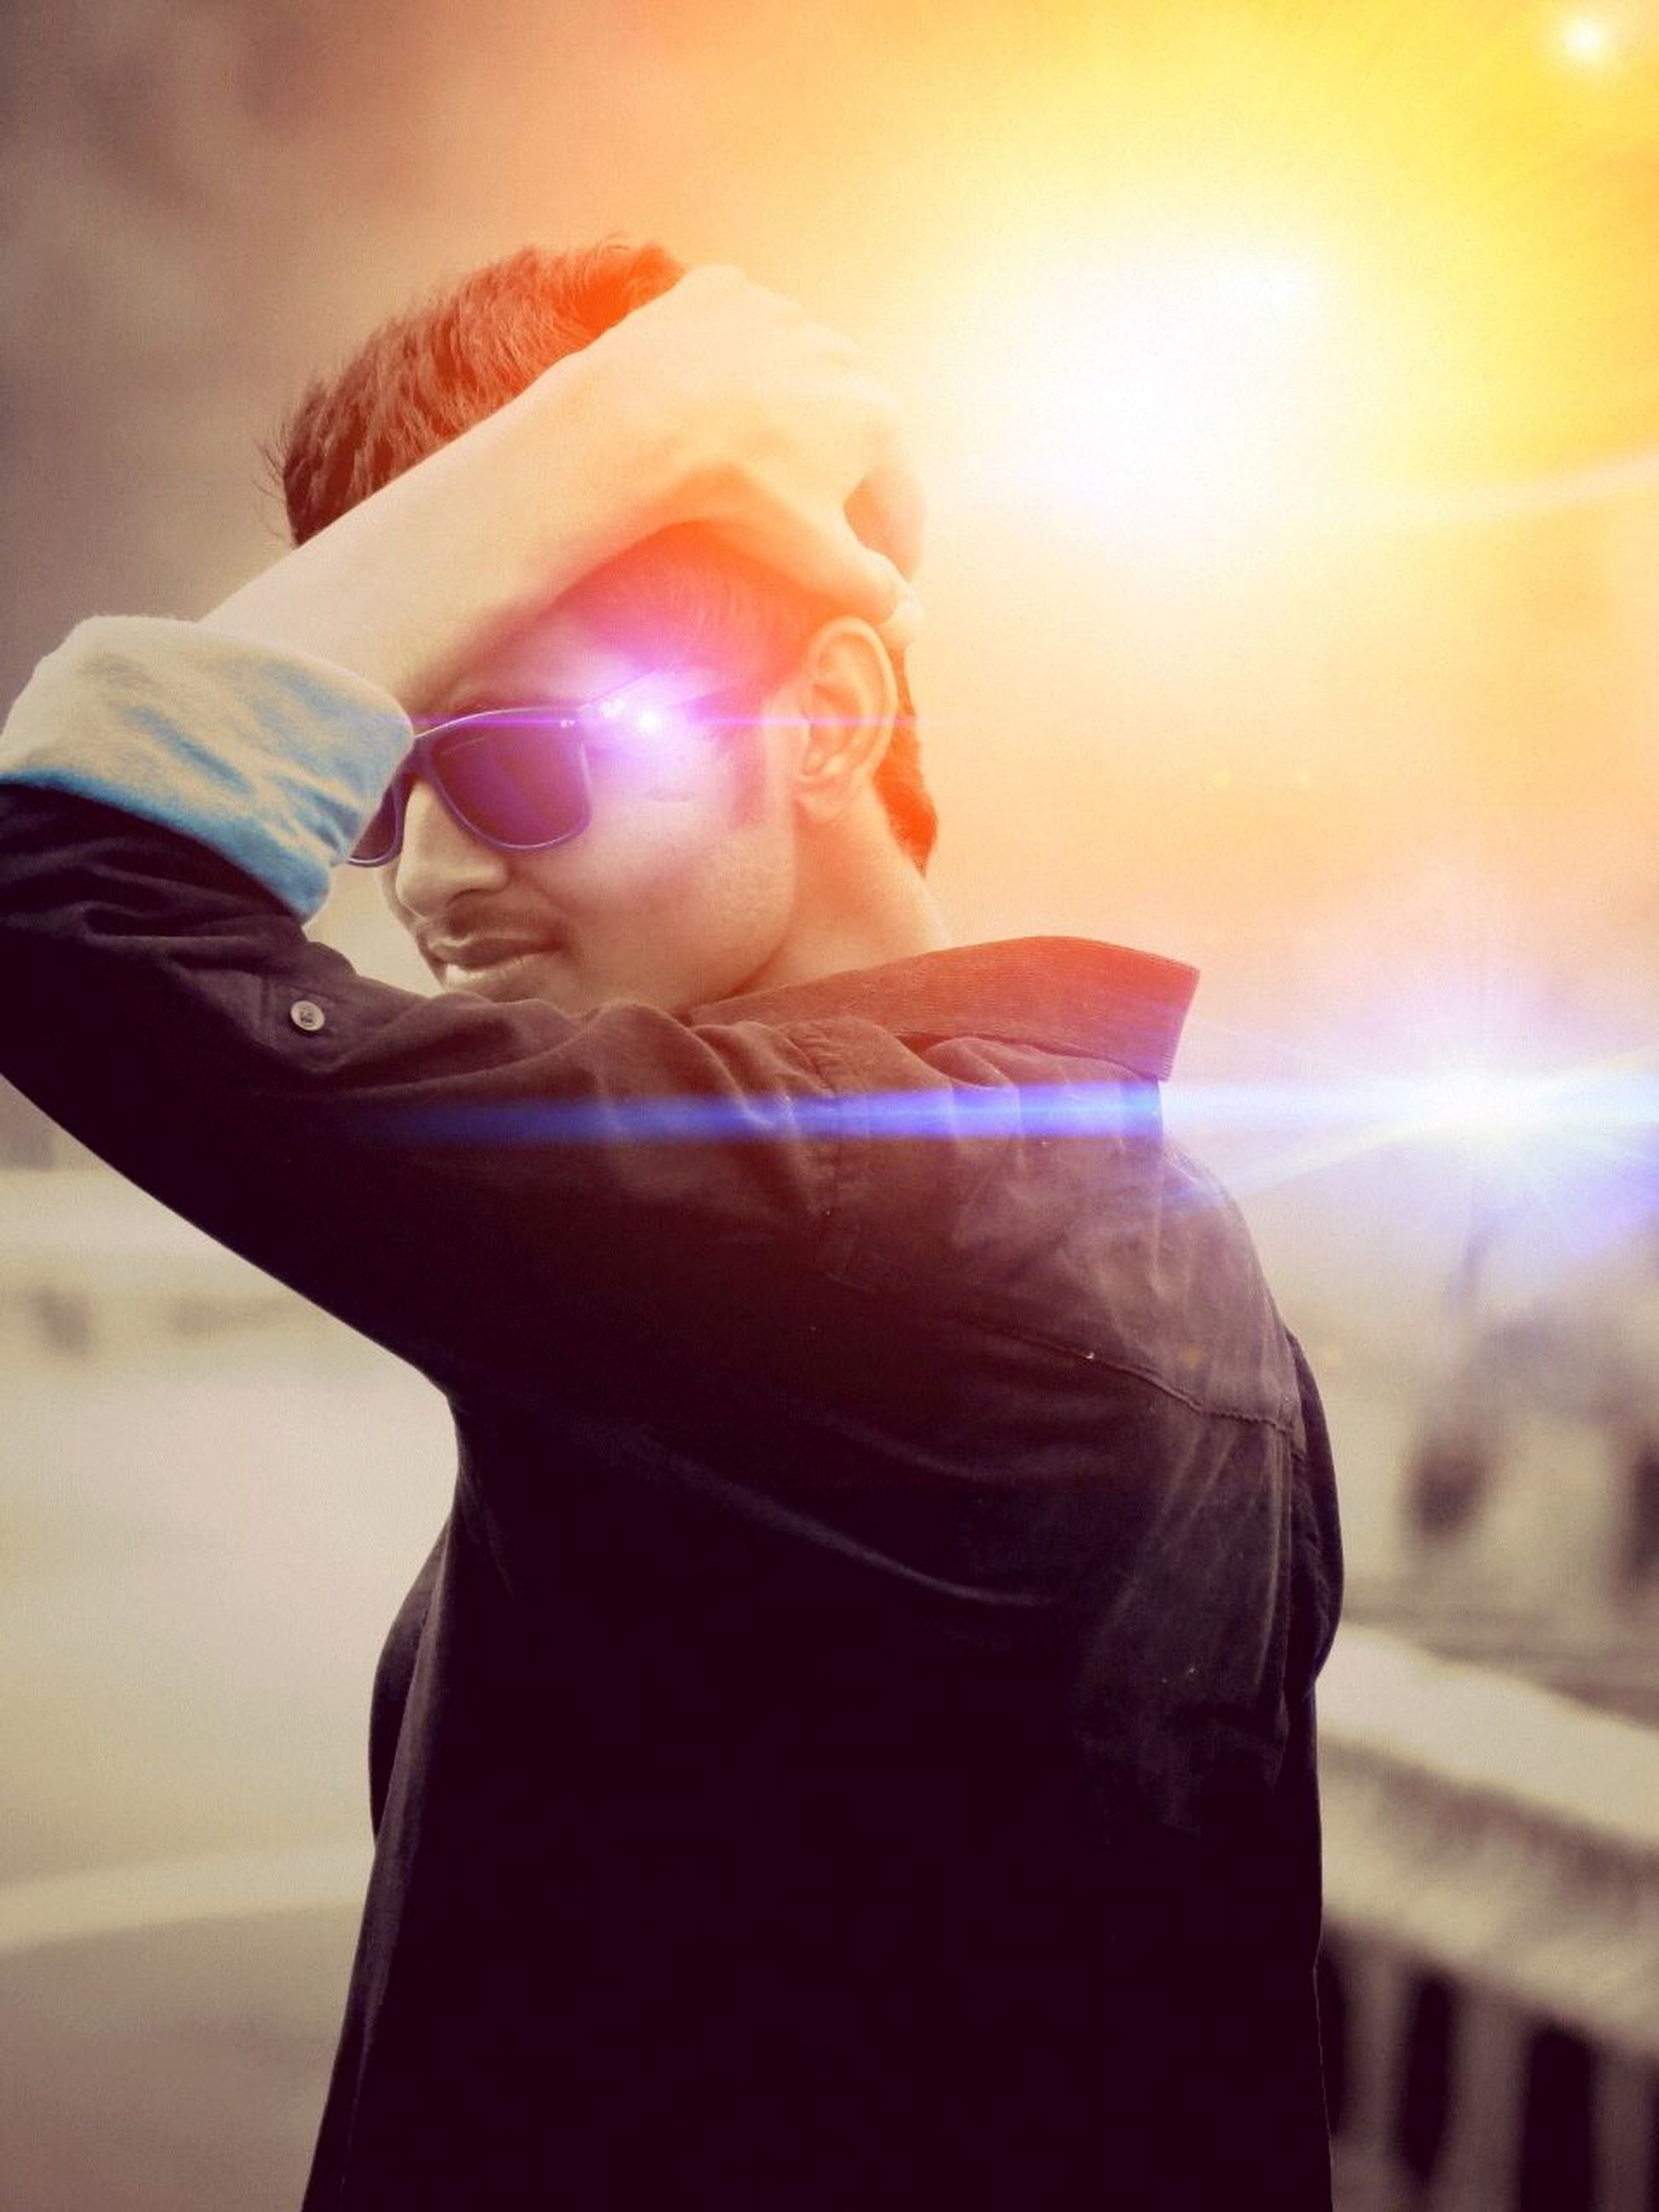 lifestyles, focus on foreground, leisure activity, person, casual clothing, headshot, young adult, front view, sunglasses, close-up, holding, sunlight, standing, waist up, hat, lens flare, three quarter length, side view